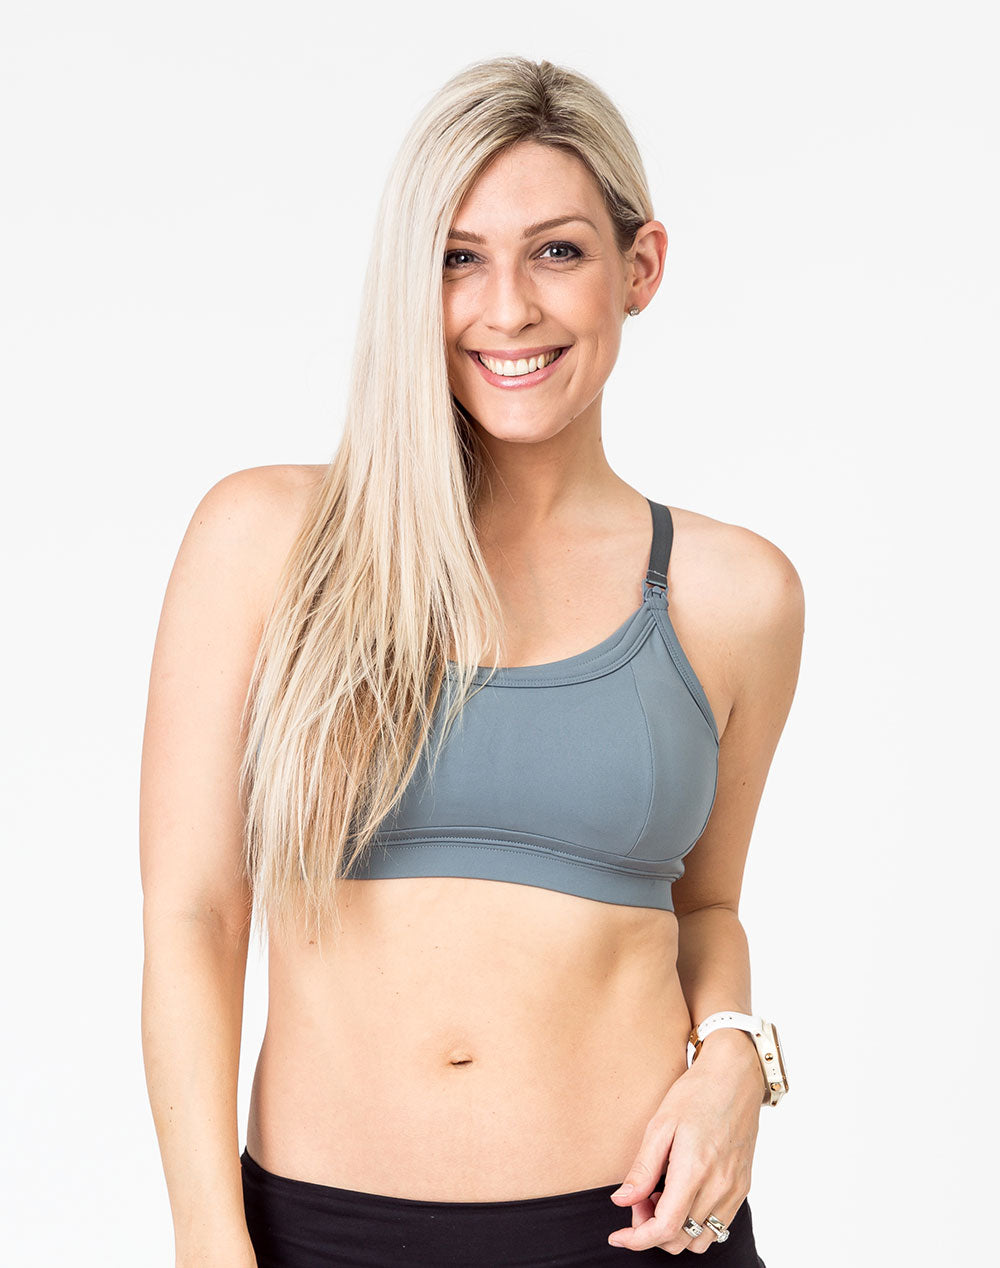 front view of a mum wearing a grey racerback nursing bra